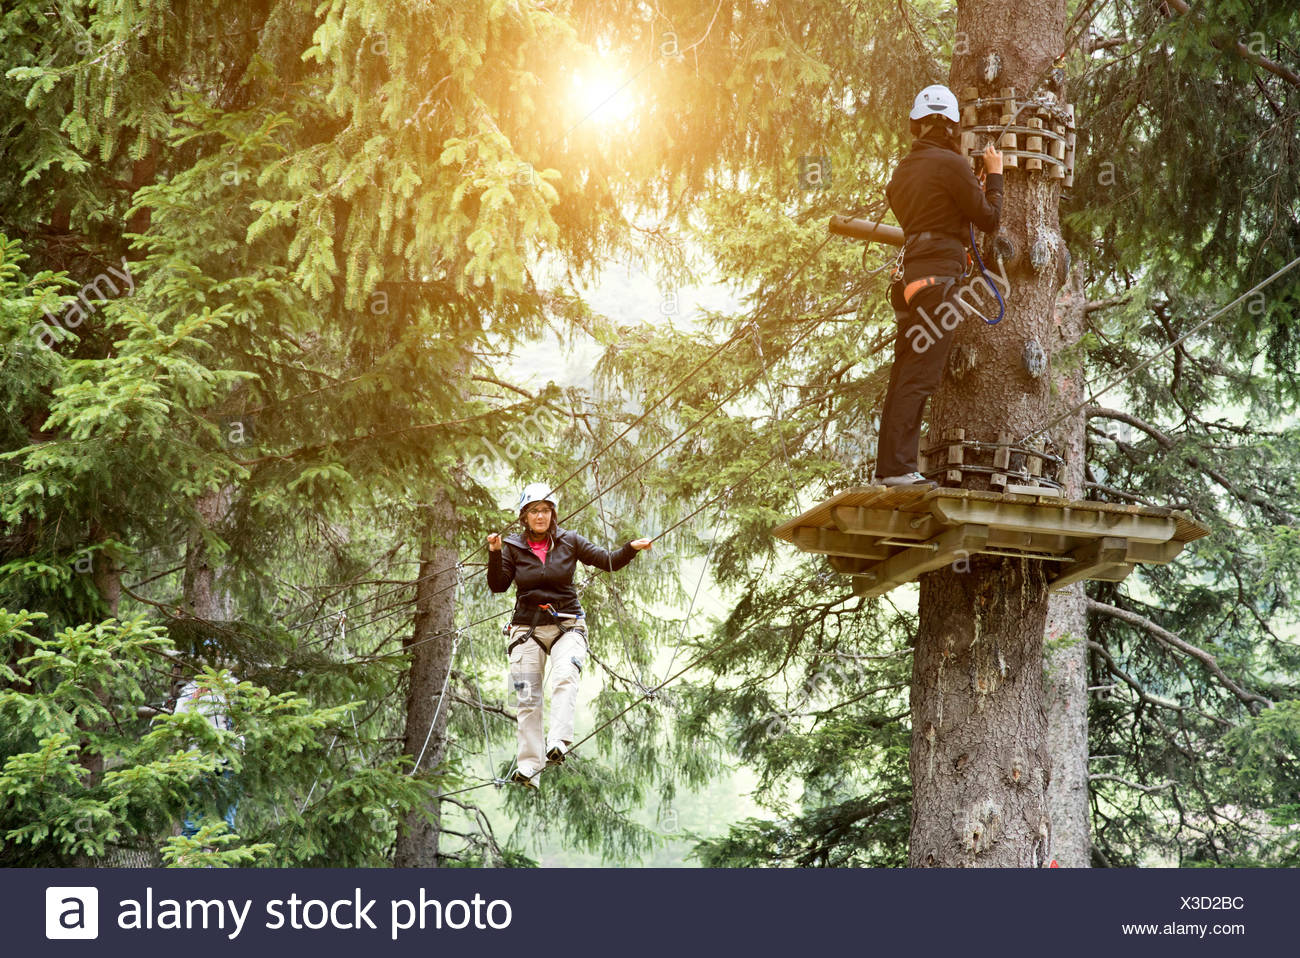 Friends in forest using high rope course - Stock Image